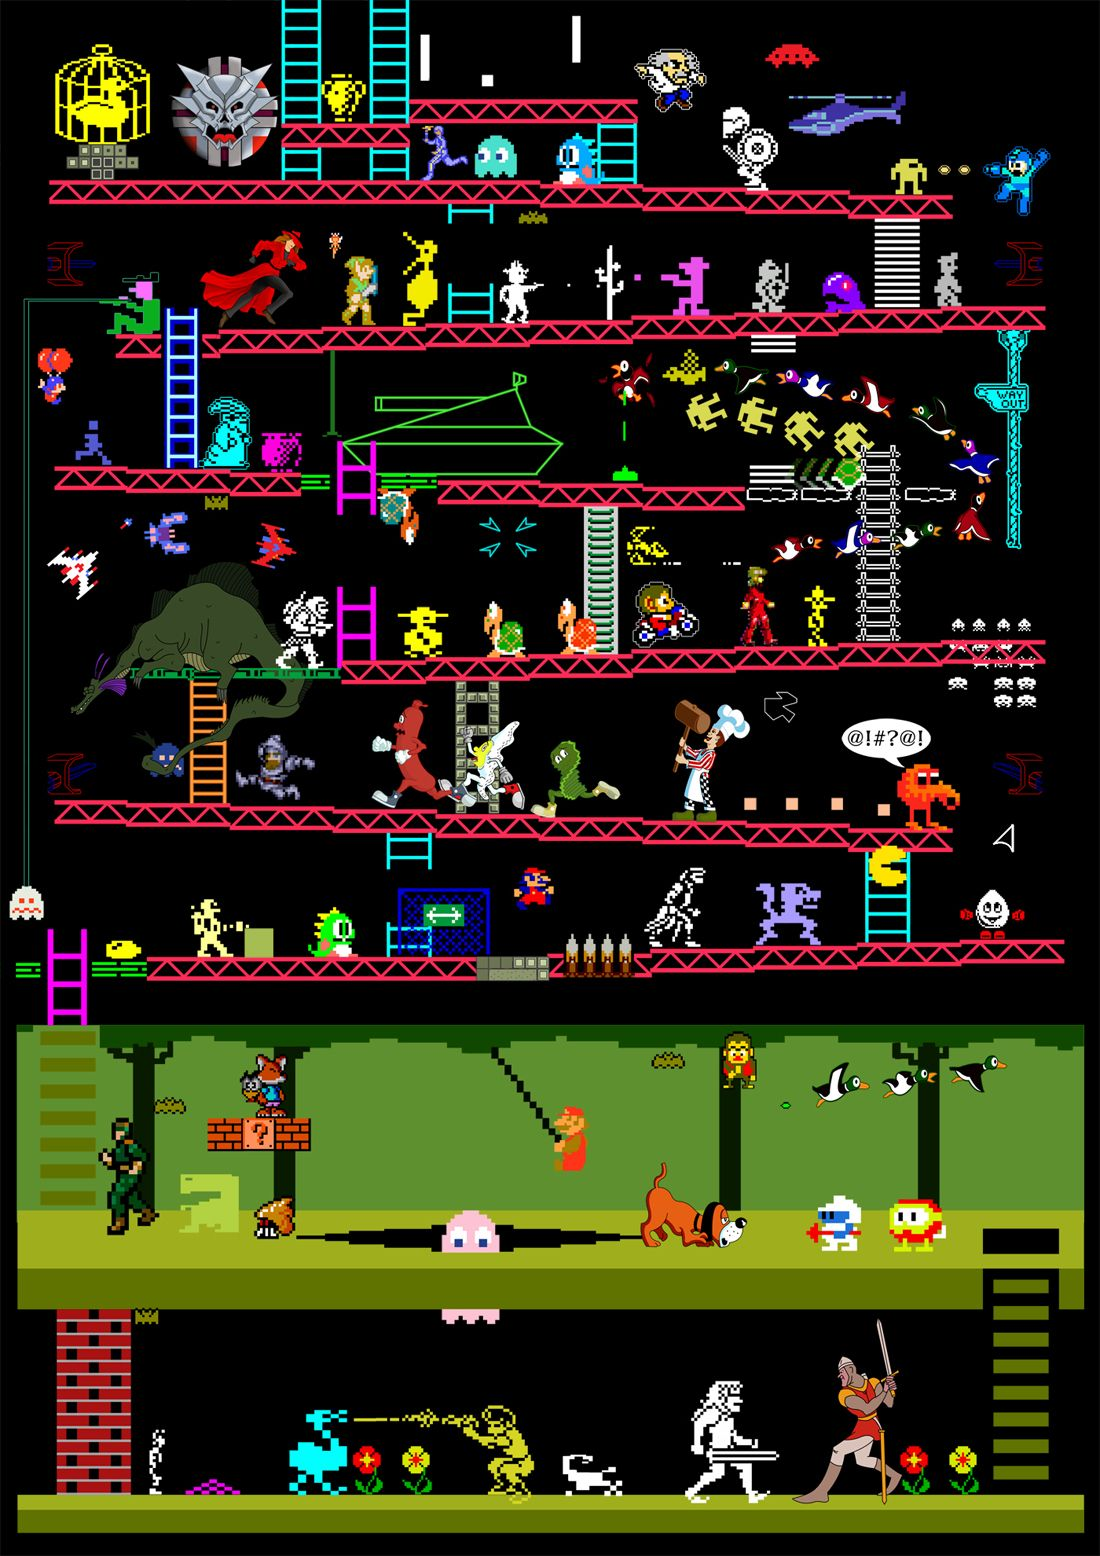 Arcade Games 50 Reto Video Game Classics In One Illustration I